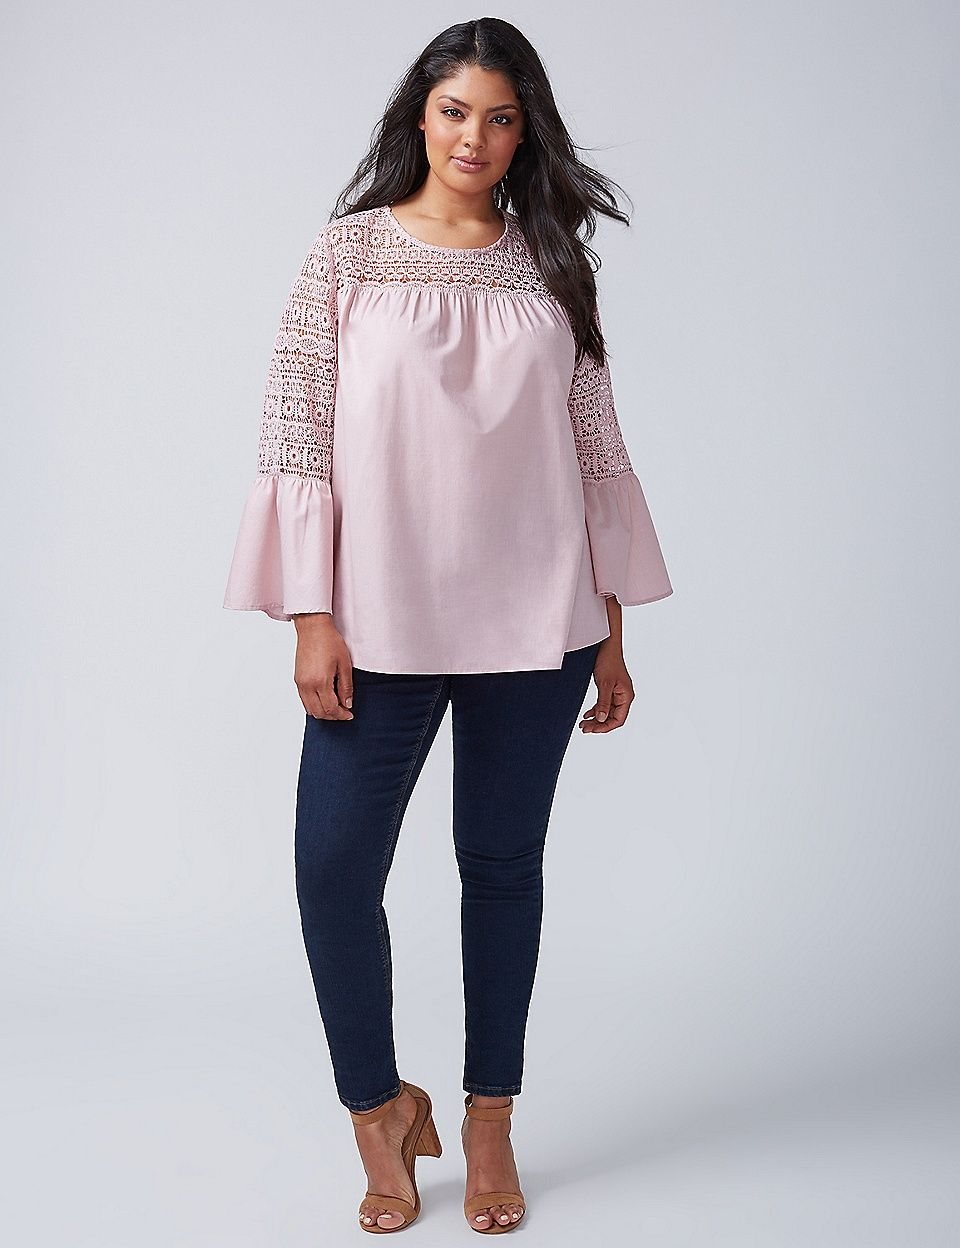 Crochet Bell Sleeve Top Lane Bryant Plus Size Tops Tops Plus